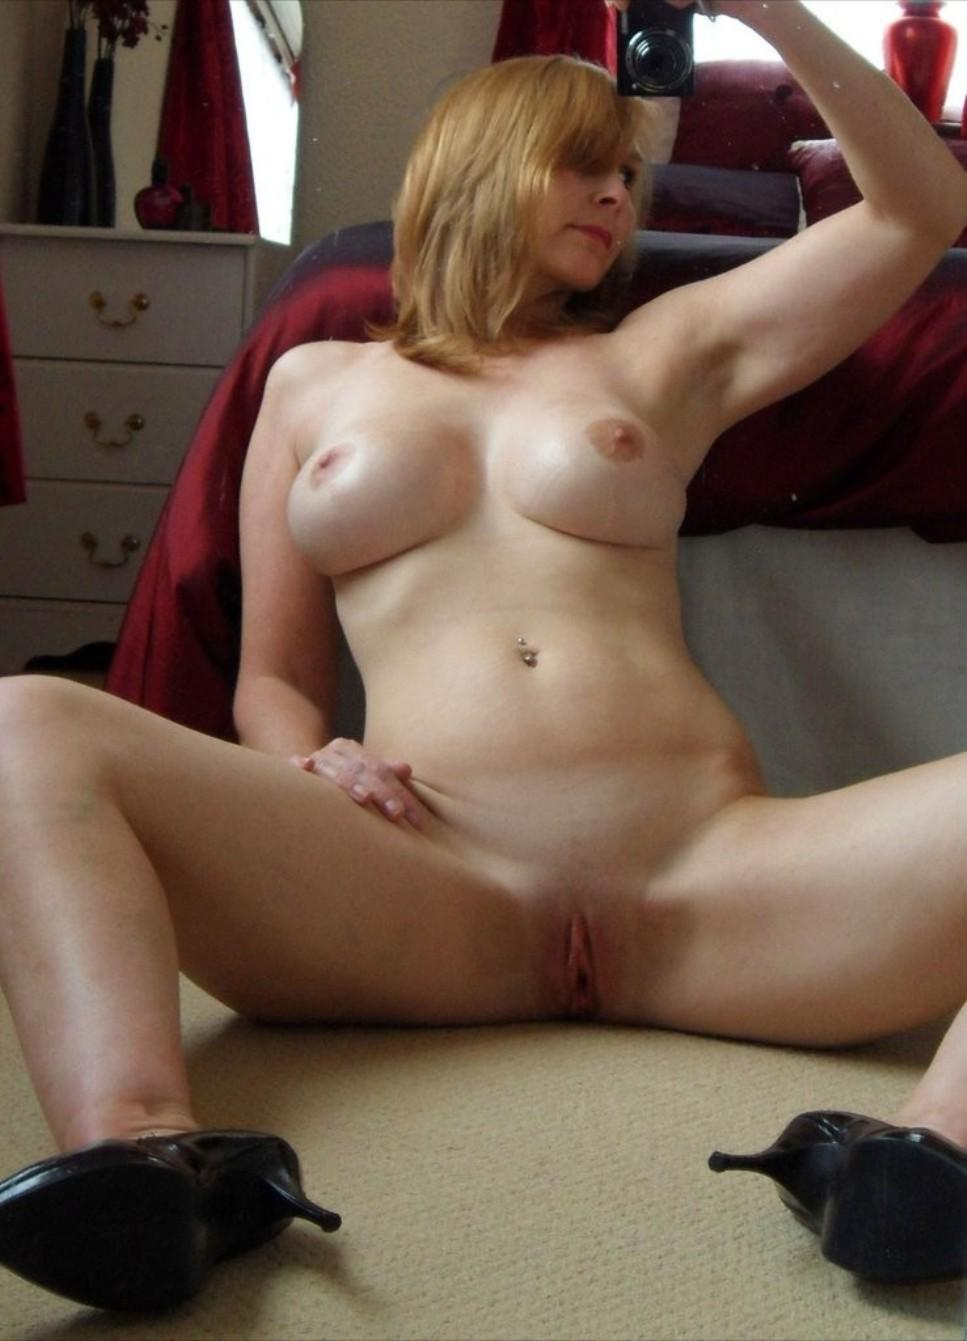 threesome with a milf on vacation Amateur, Bitch, Caption, Degraded, Exposed, Hairy, Homemade, Hot, Housewife, Humiliation, Mature, Milf, Nude, Reluctant, Shy, Webslut, Wife